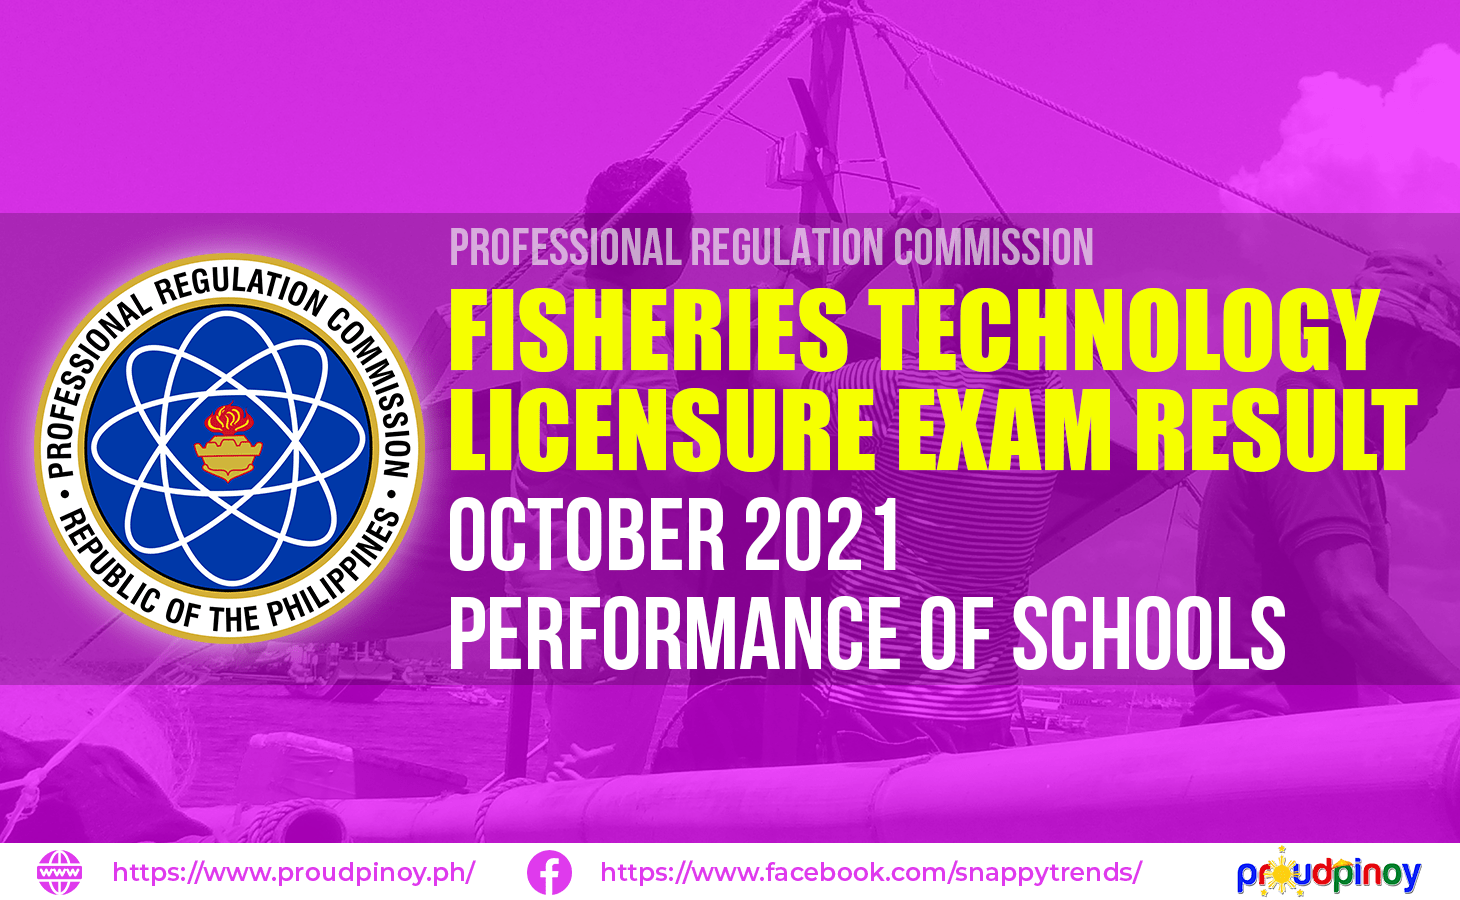 Fisheries Technologist Exam Results October 2021 Performance of Schools